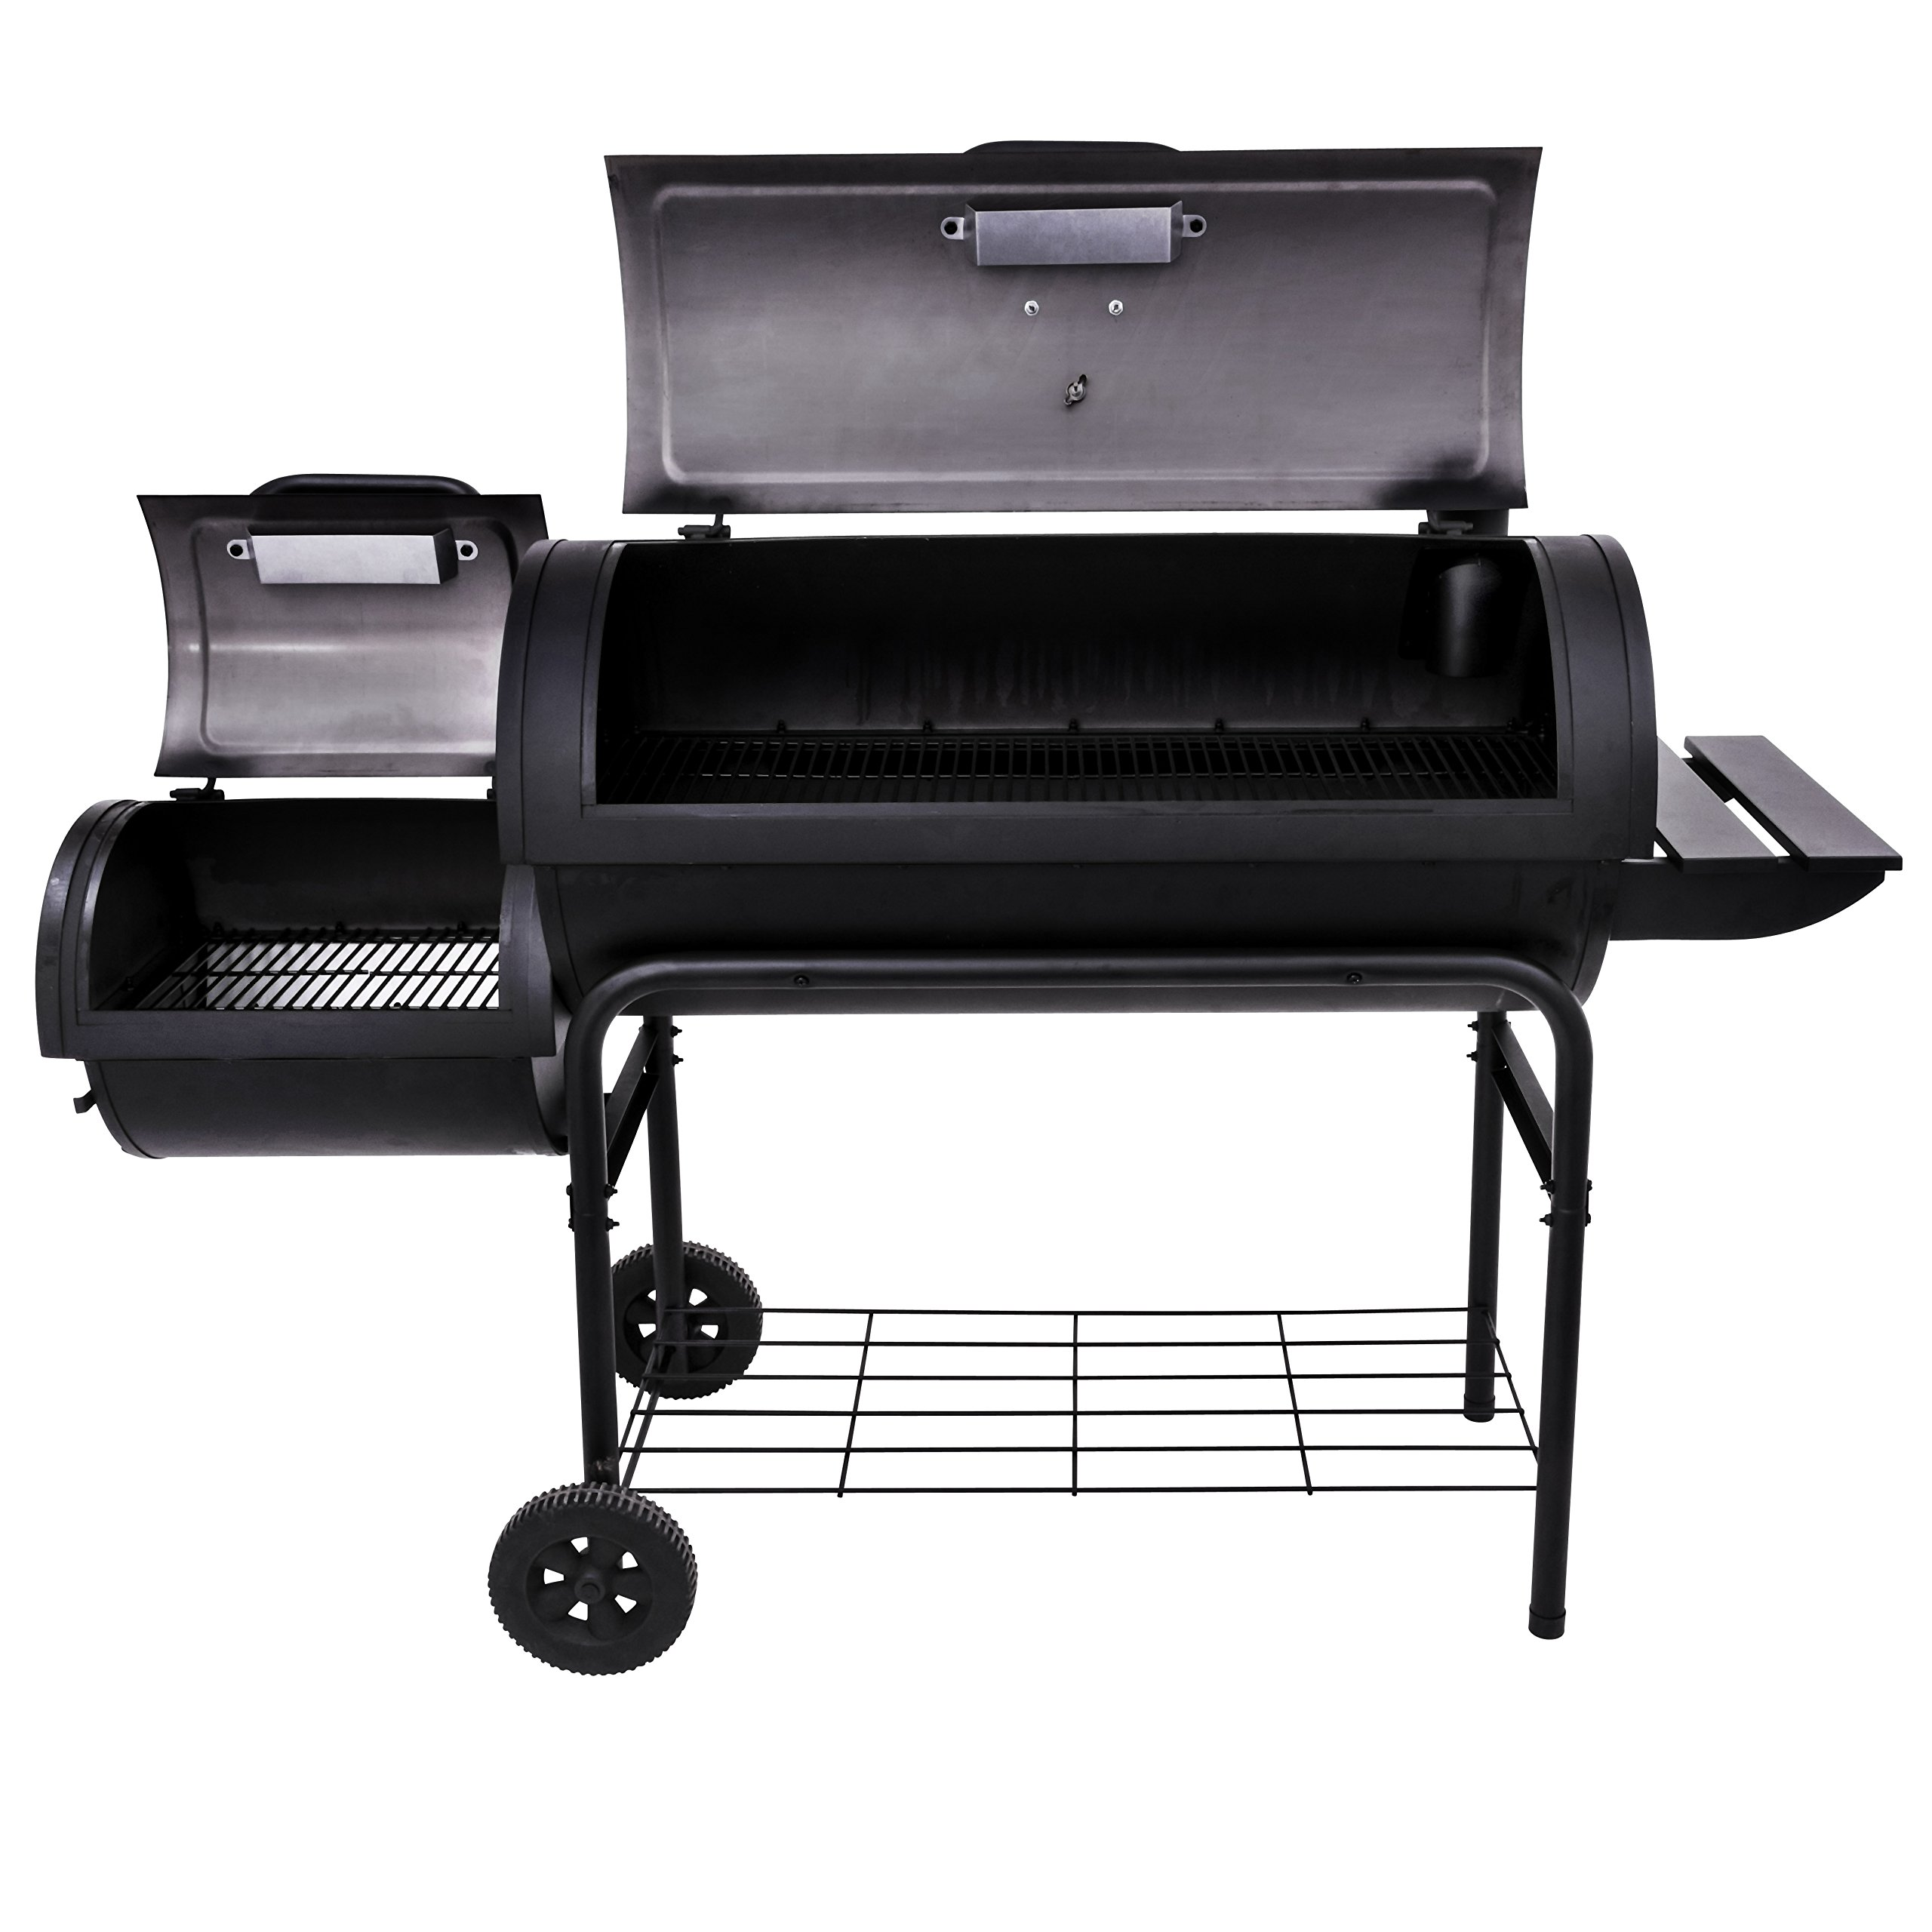 Char-Broil Offset Smoker, 40'' by Char-Broil (Image #4)